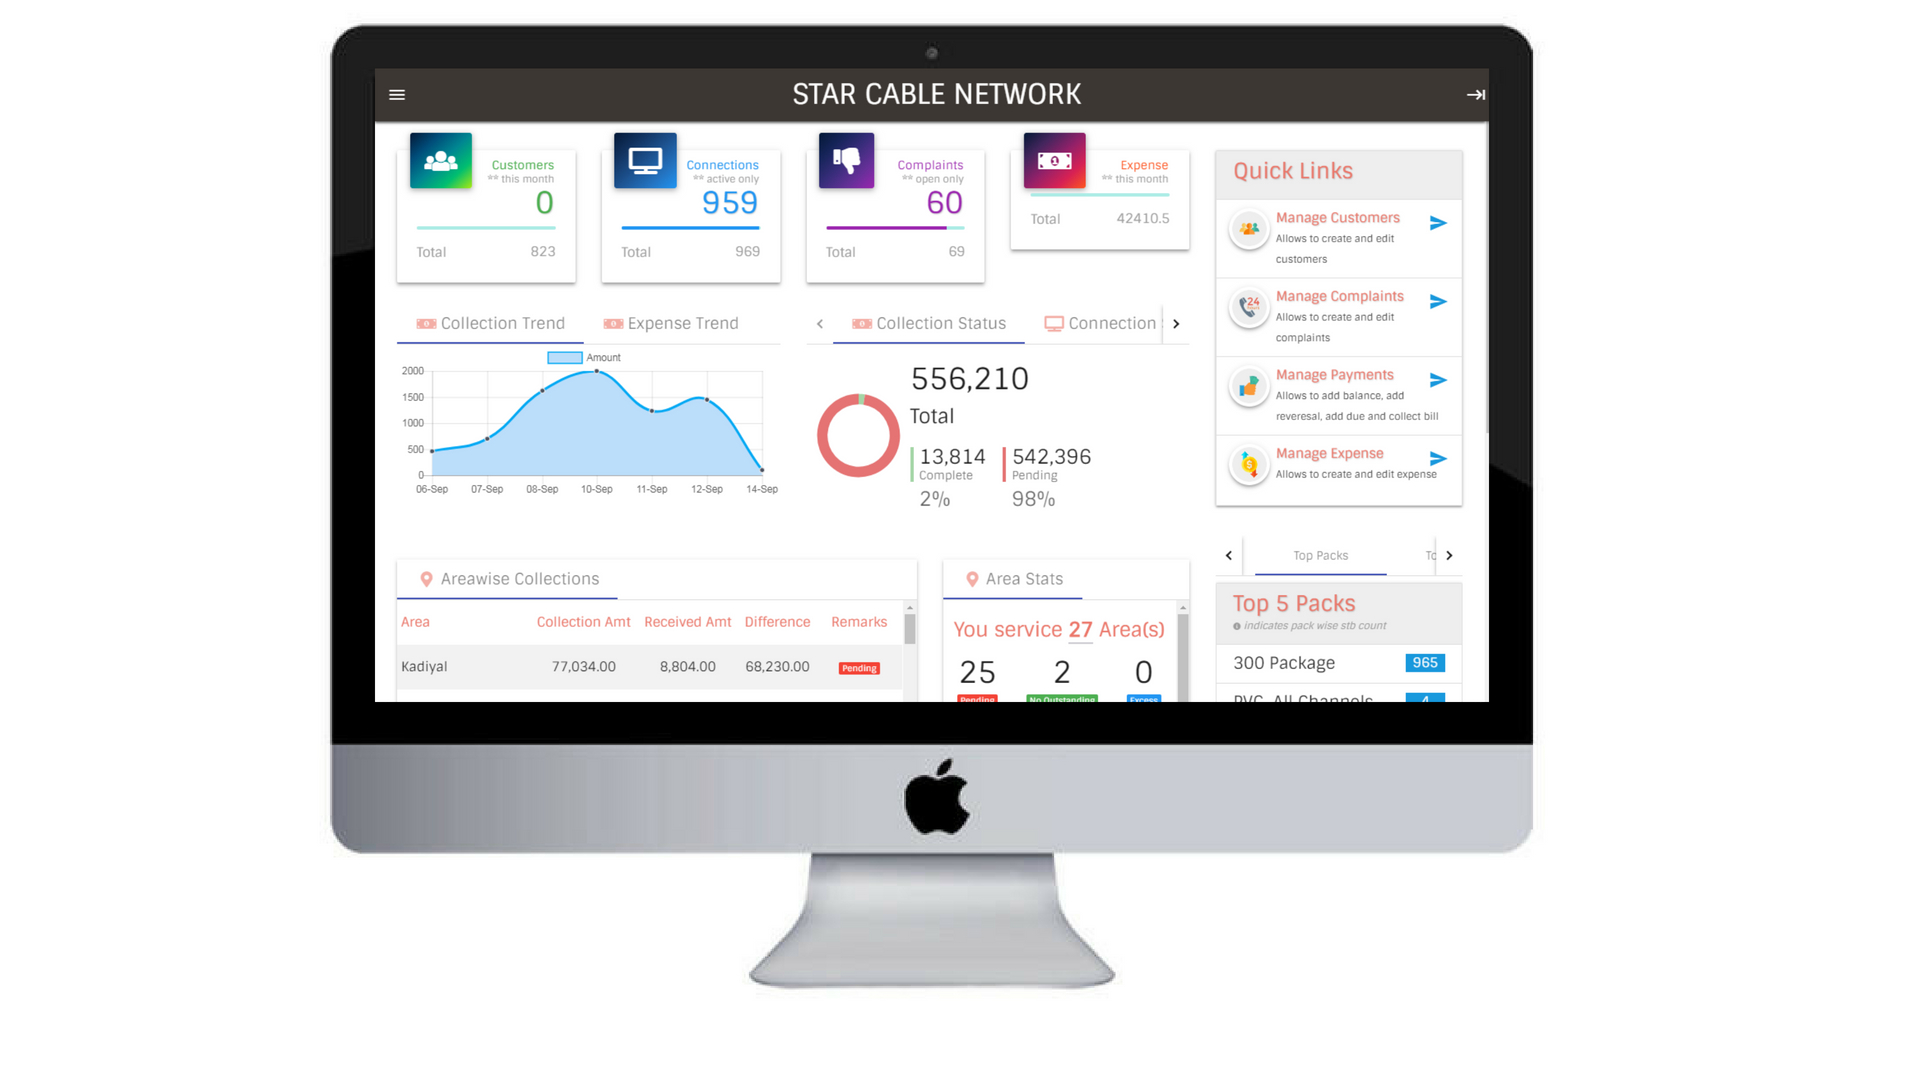 Local Cable Tv Operator Billing Software Set Top Box Crm